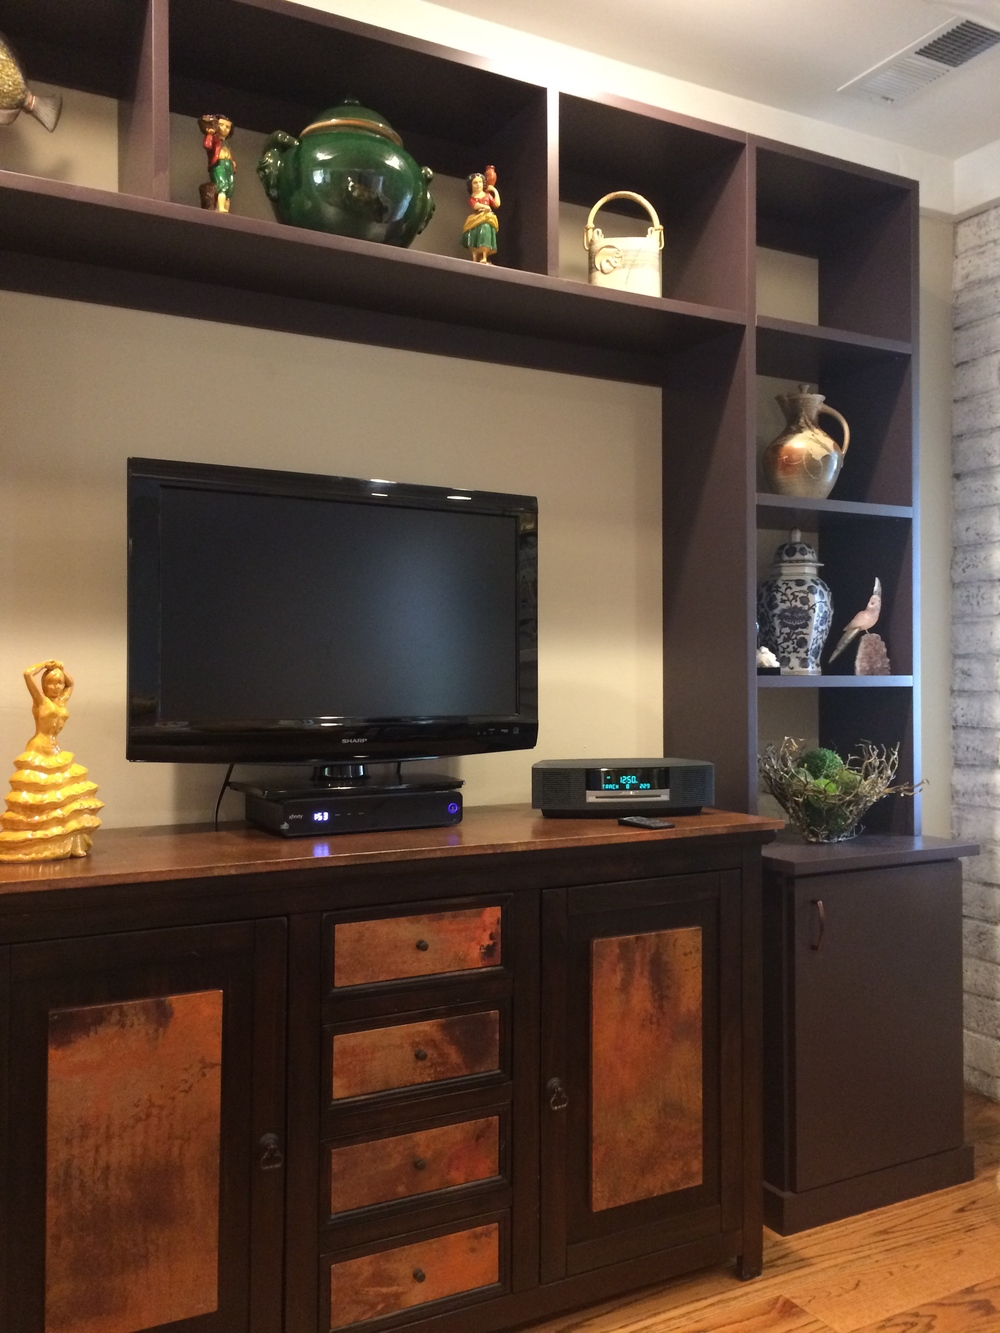 blog r c cabinets closets sonoma custom cabinetry and closets. Black Bedroom Furniture Sets. Home Design Ideas